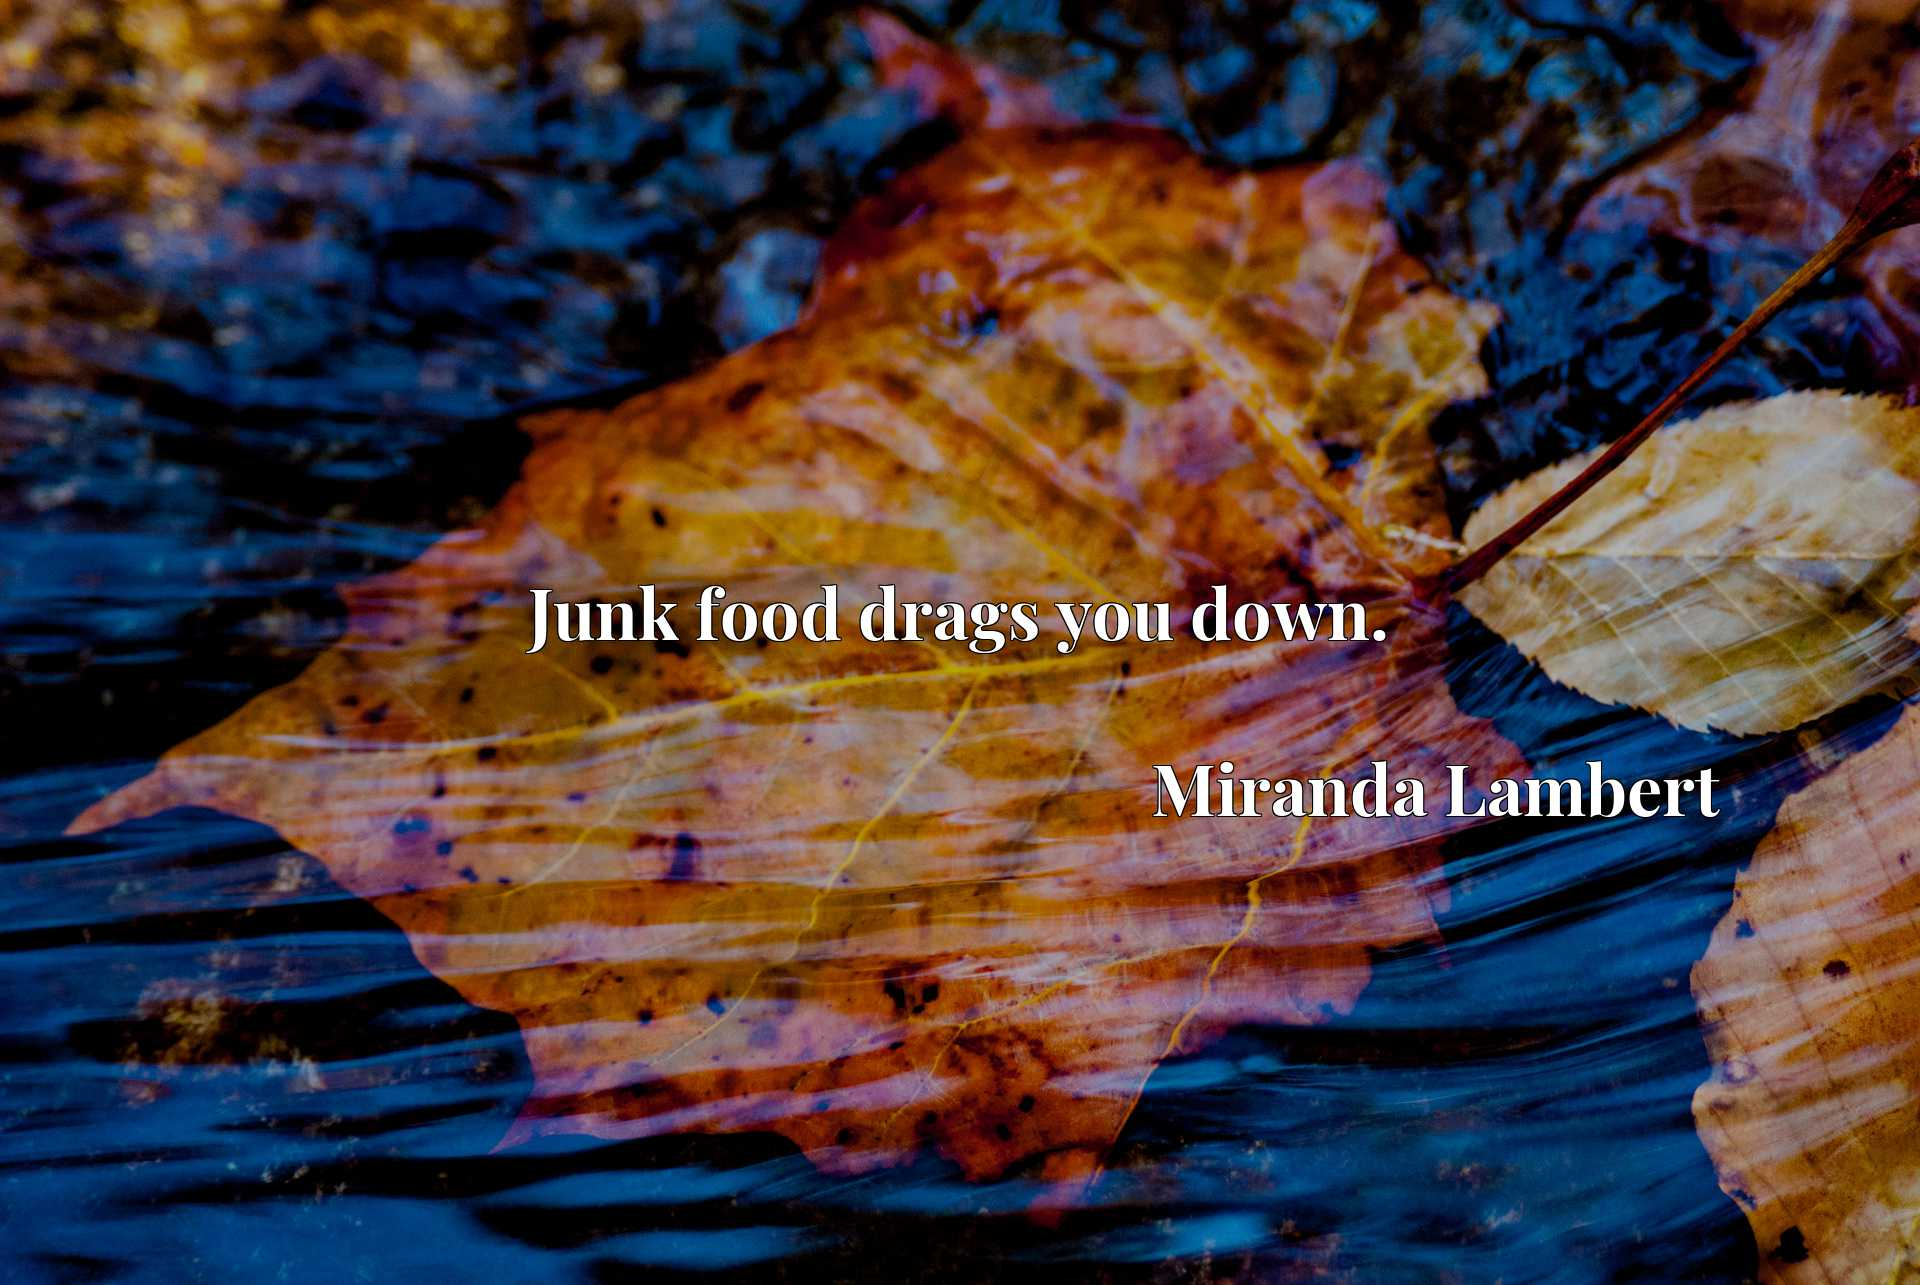 Junk food drags you down.